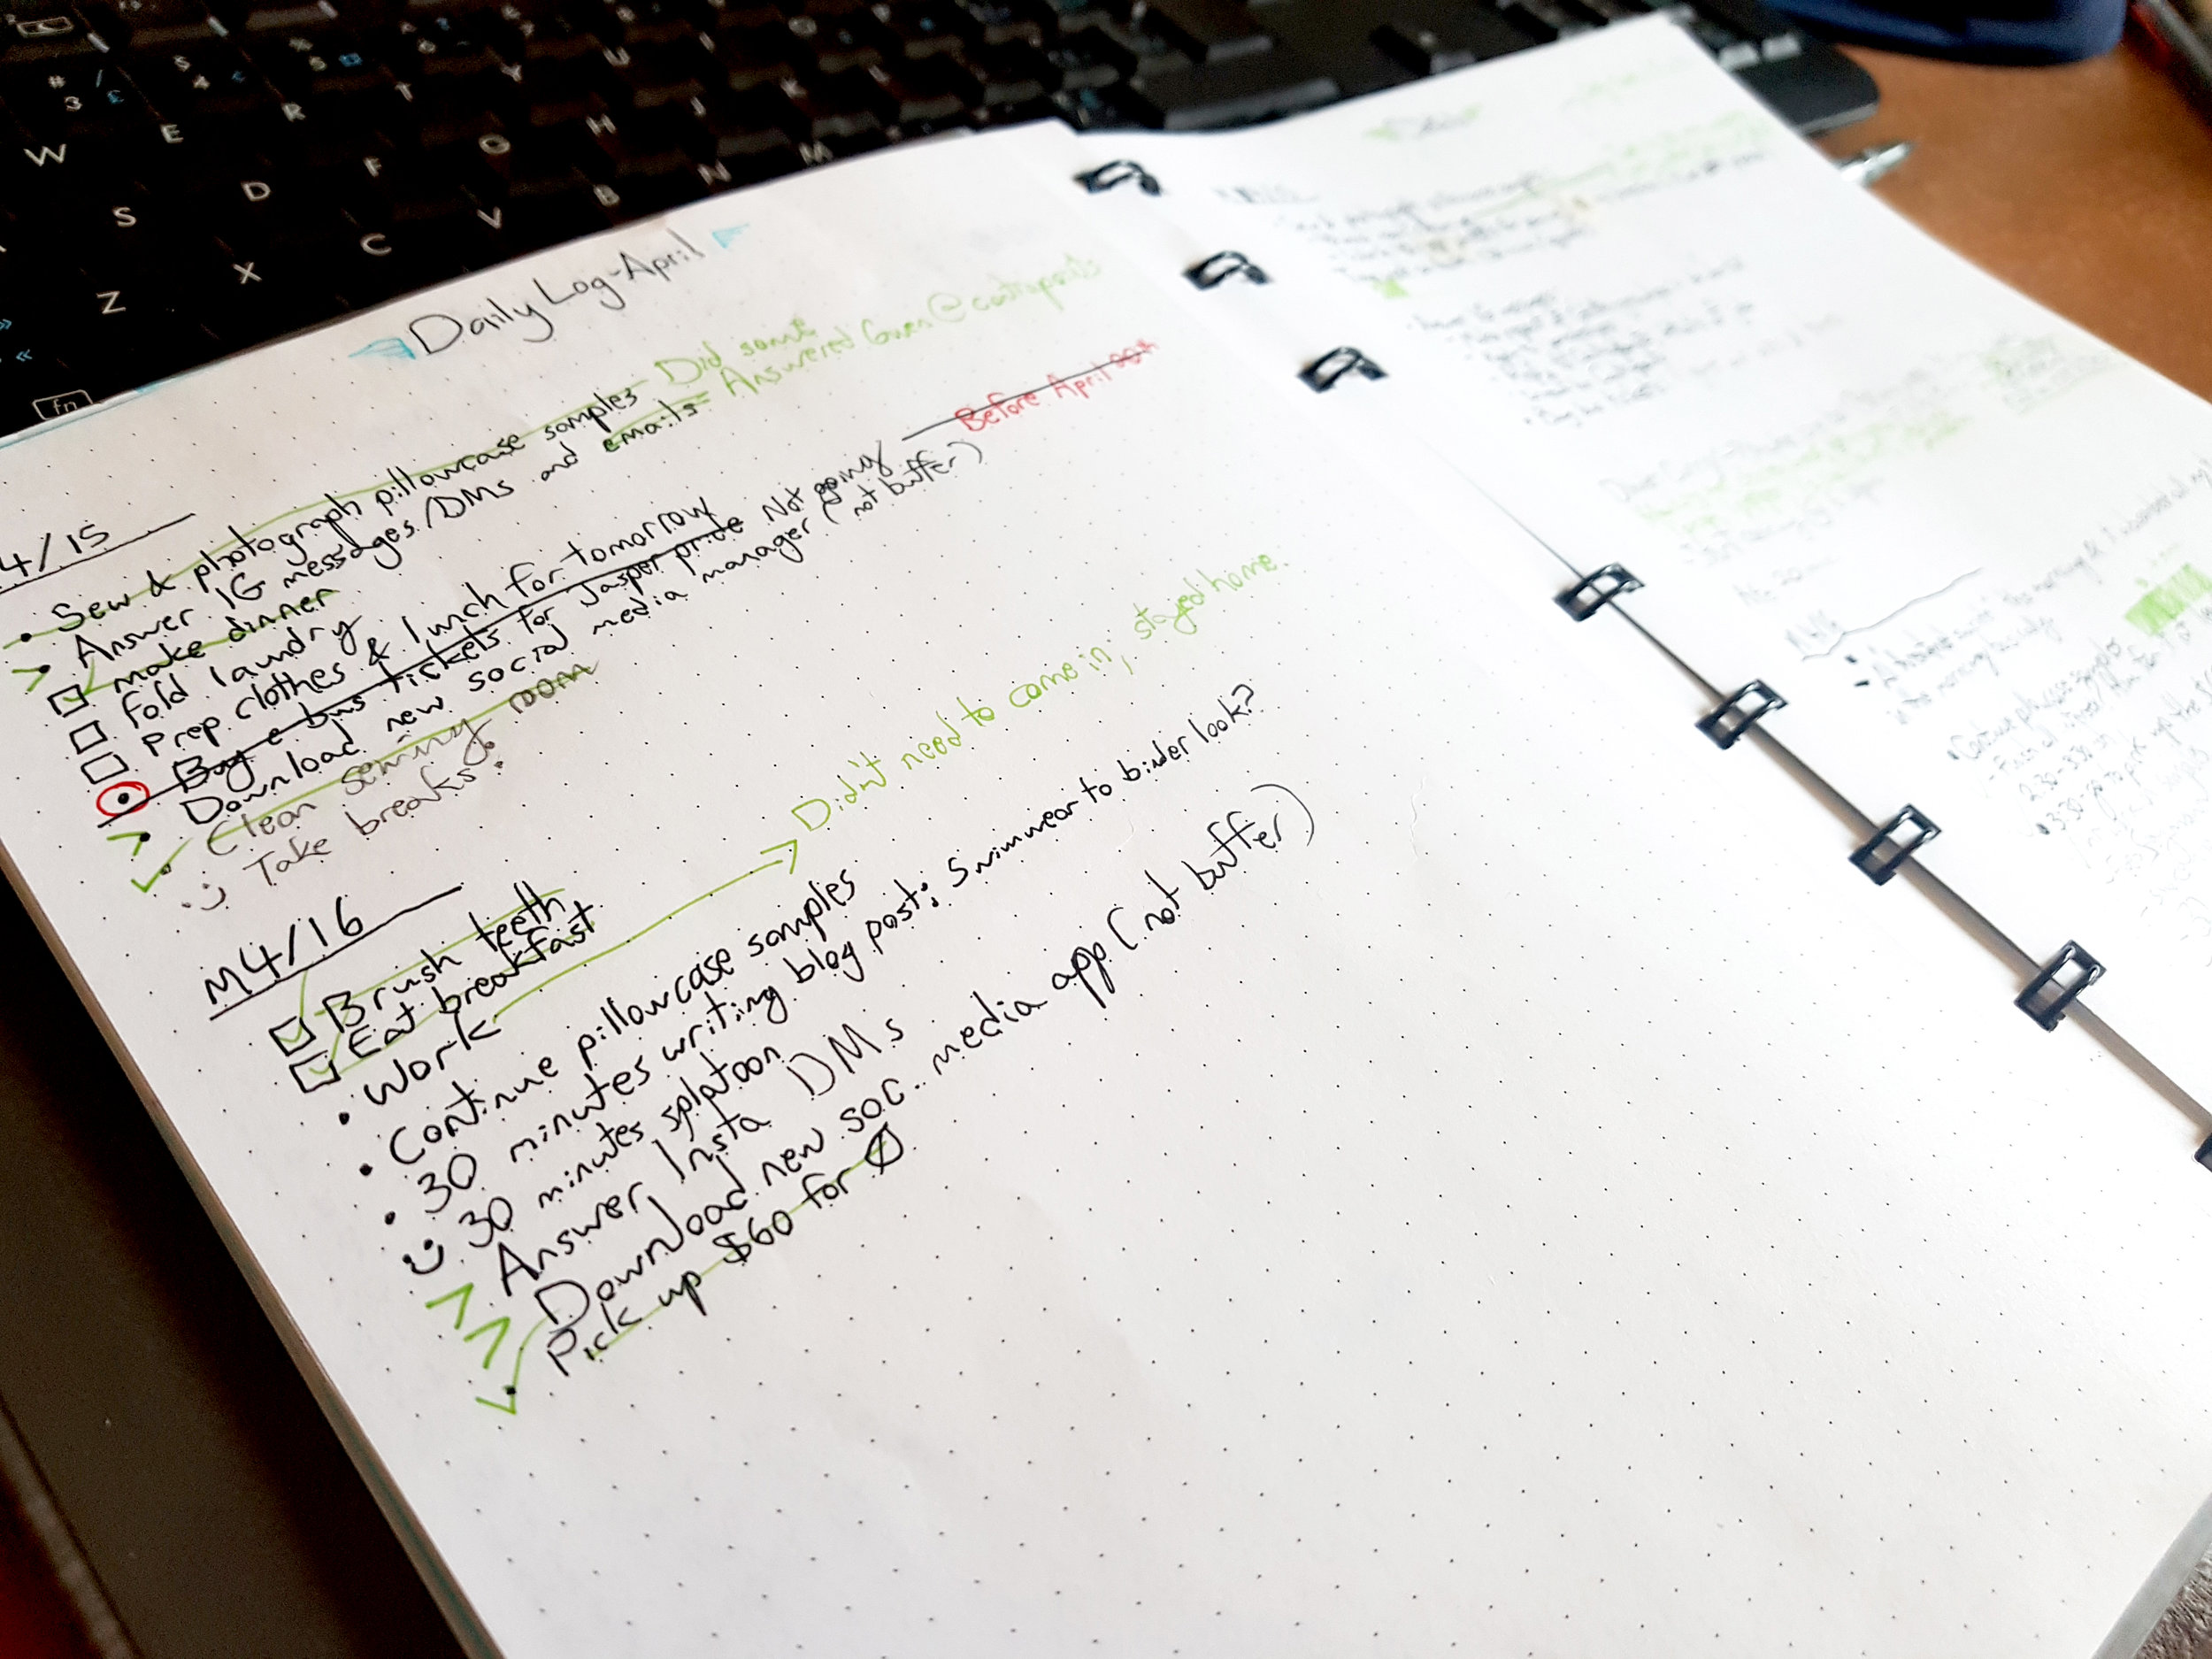 A bullet journal laid open in front of a black keyboard. The bullet journal has a couple task lists, and the writing uses black, red, kiwi green, and cyan pens.